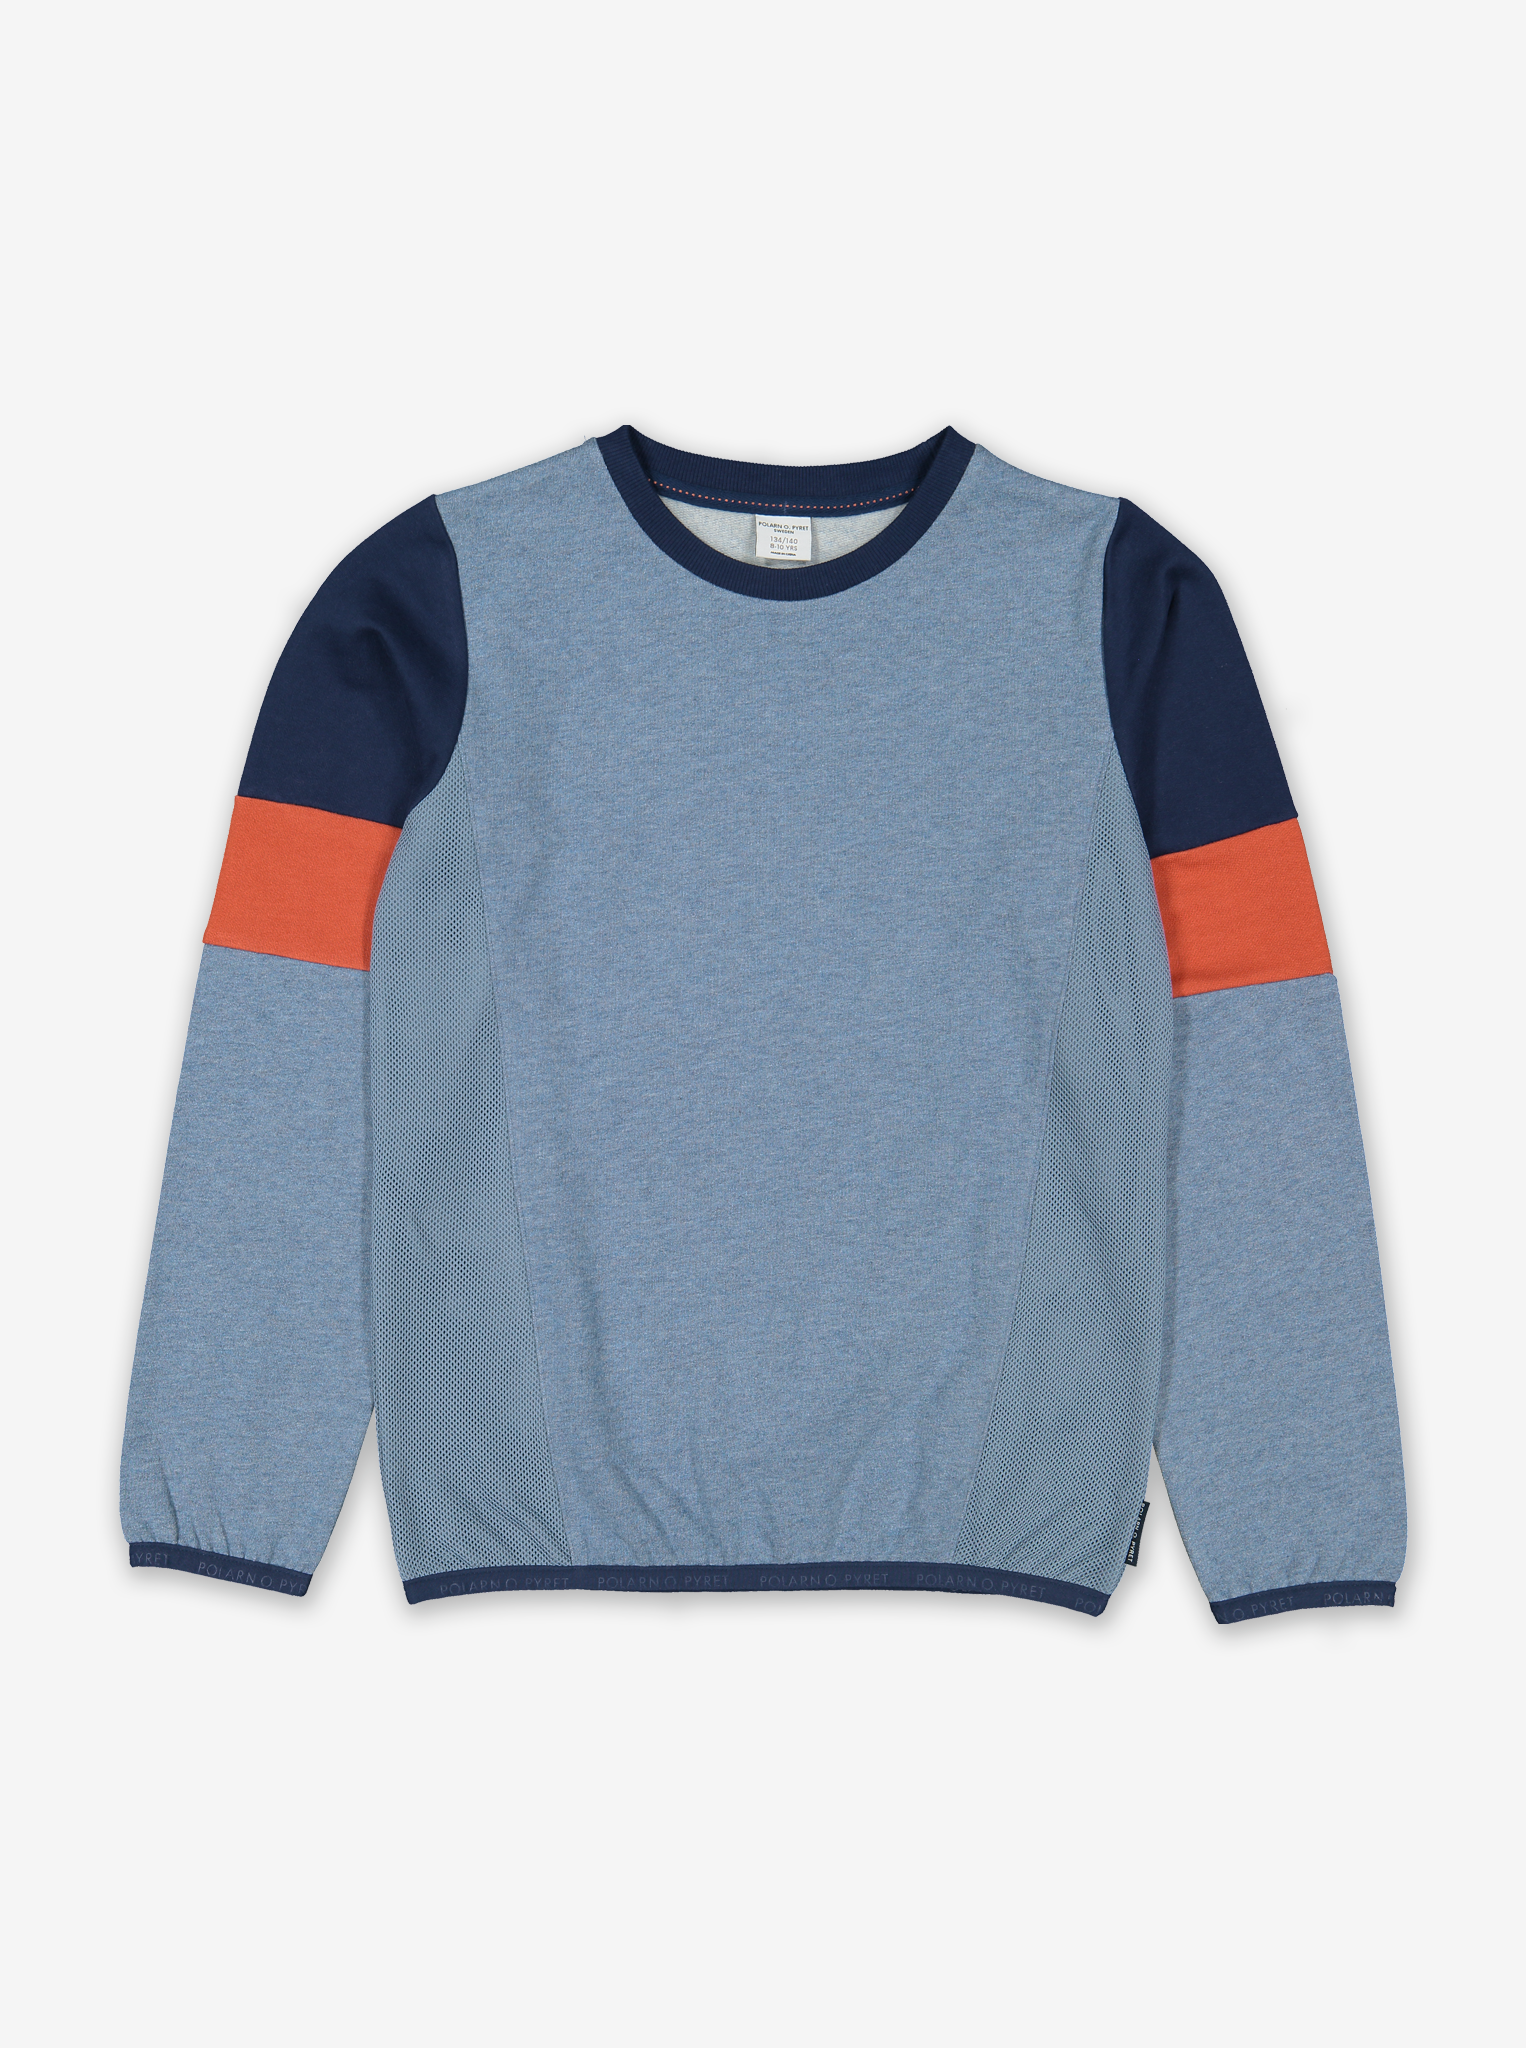 Colour Block Kids Sweatshirt-Boy-6-12y-Blue